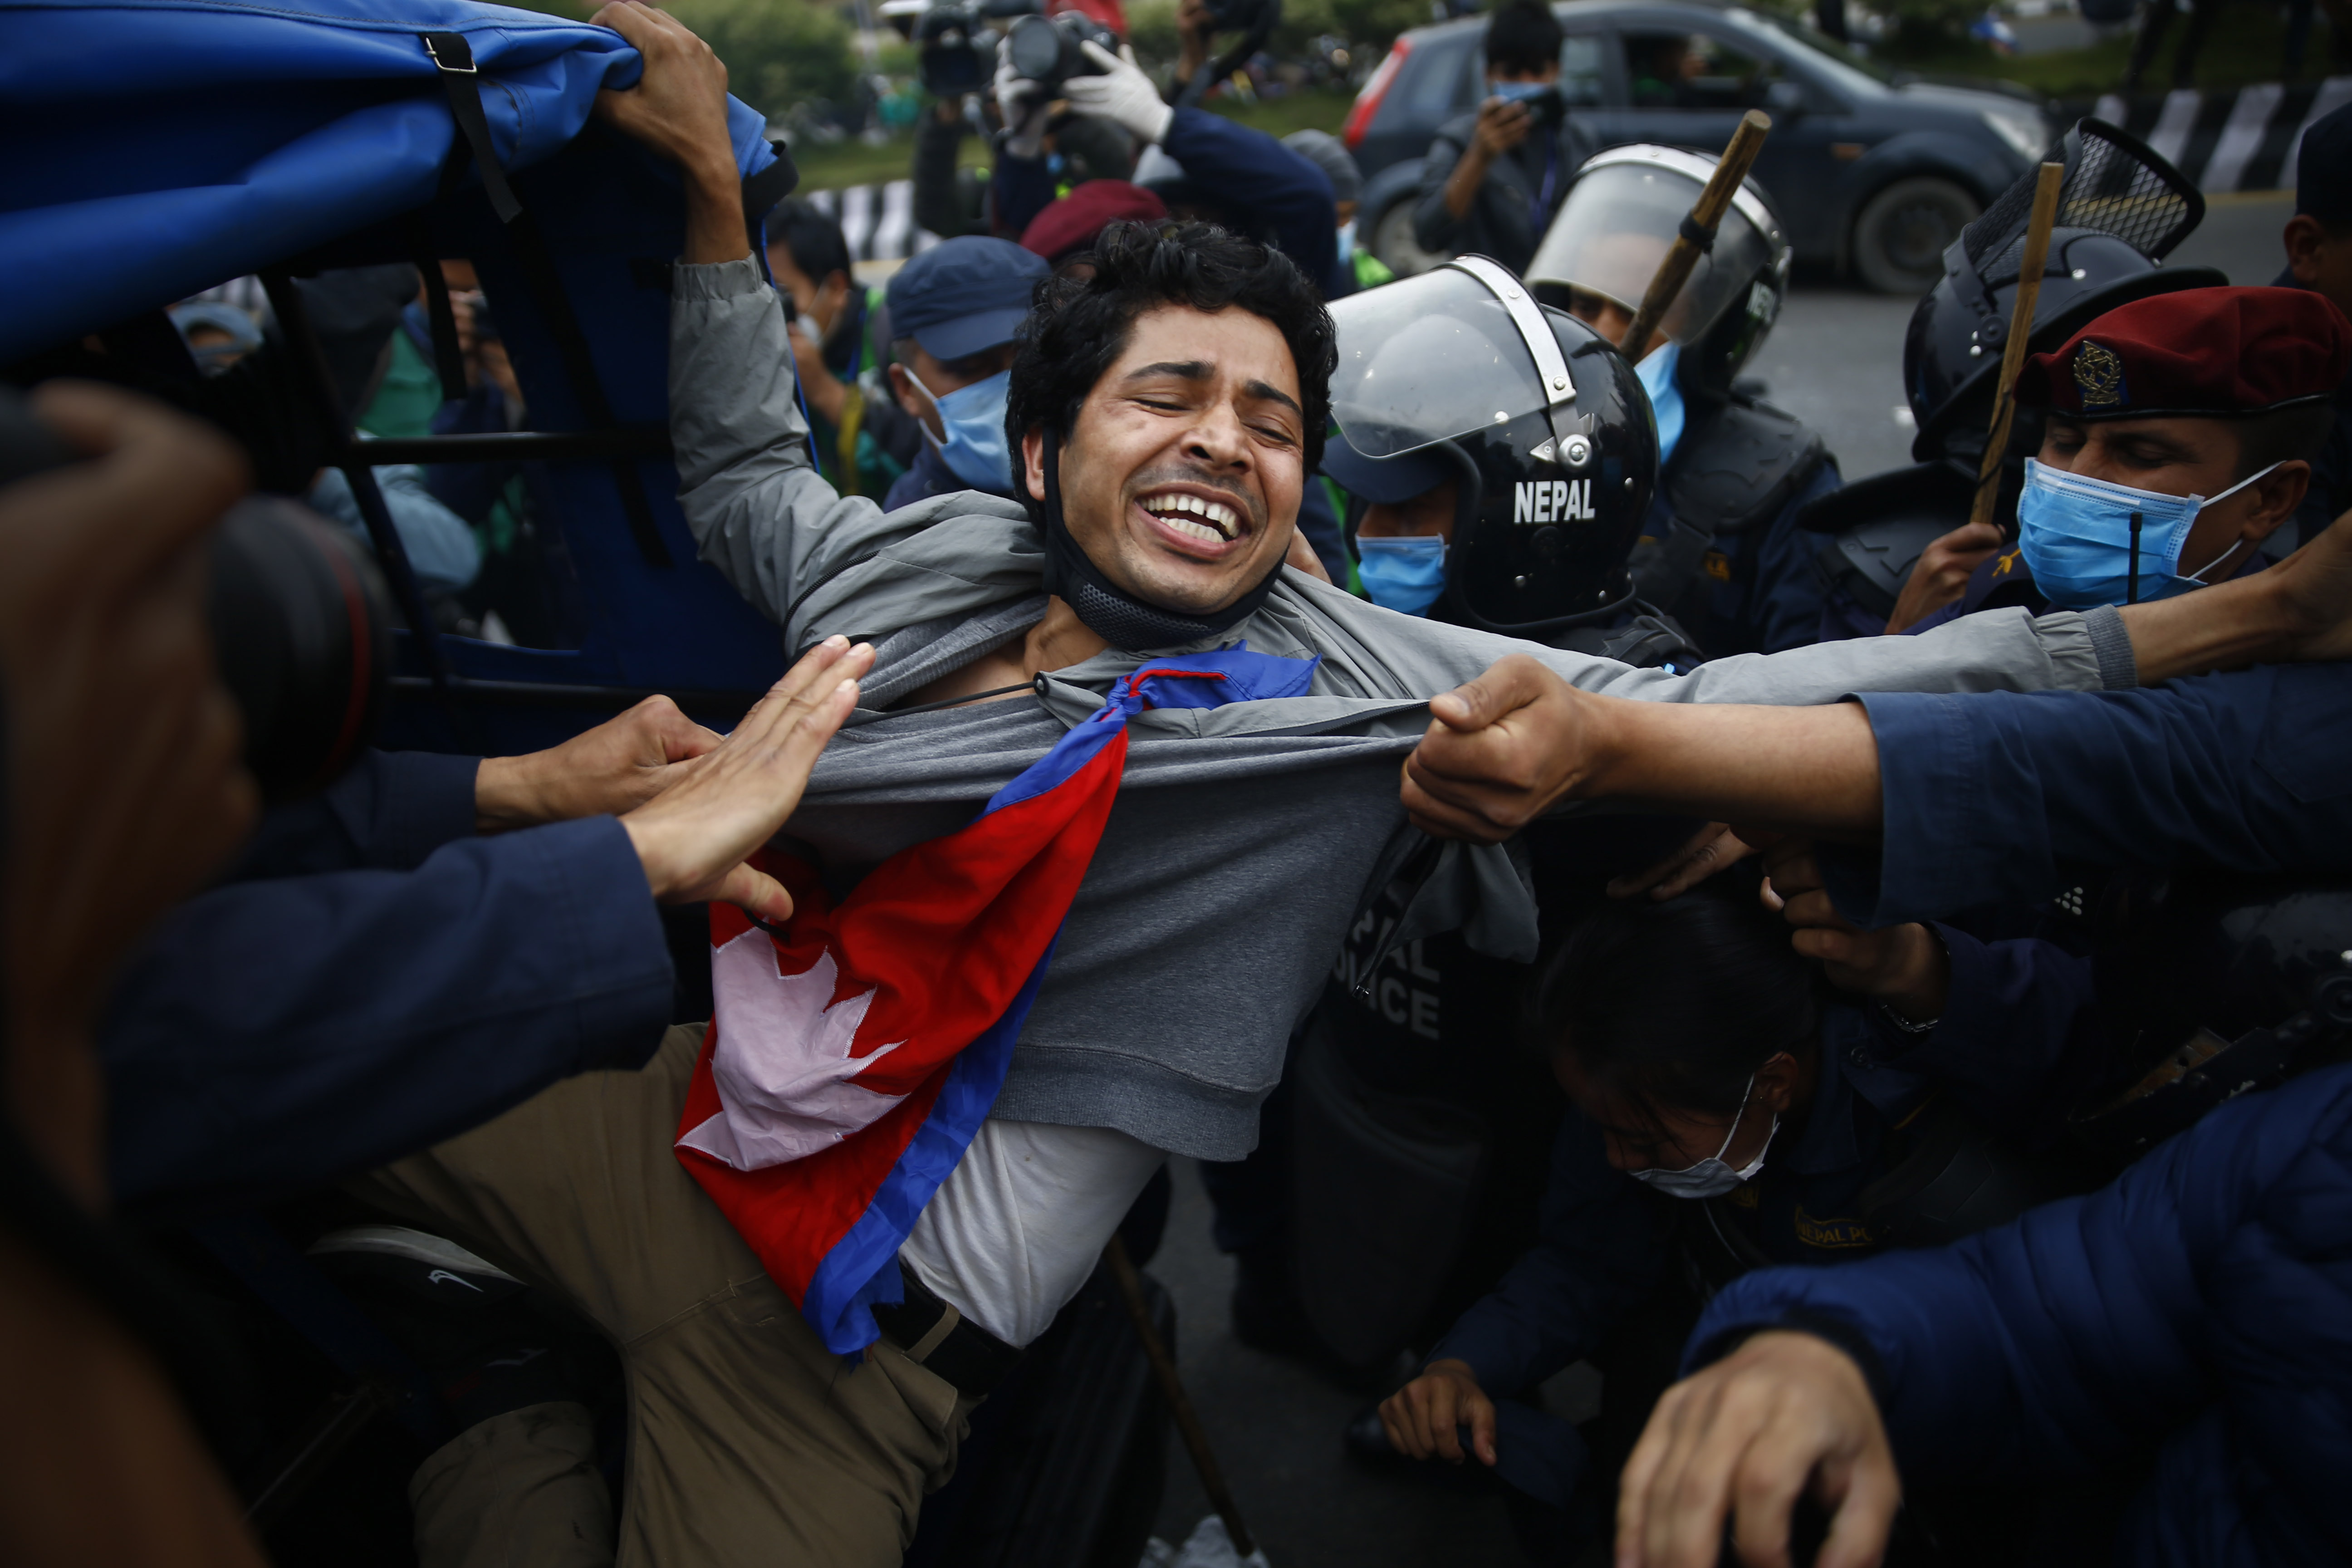 Police arrest student agitators after they burn an effigy of Indian Prime Minister Narendra Modi following Indian government's recent inauguration of a link road to Mansarovar of Tibet in China via Lipulekh region, a Nepali territory, in Kathmandu, on Monday, May 11, 2020. Photo: Skanda Gautam/THT